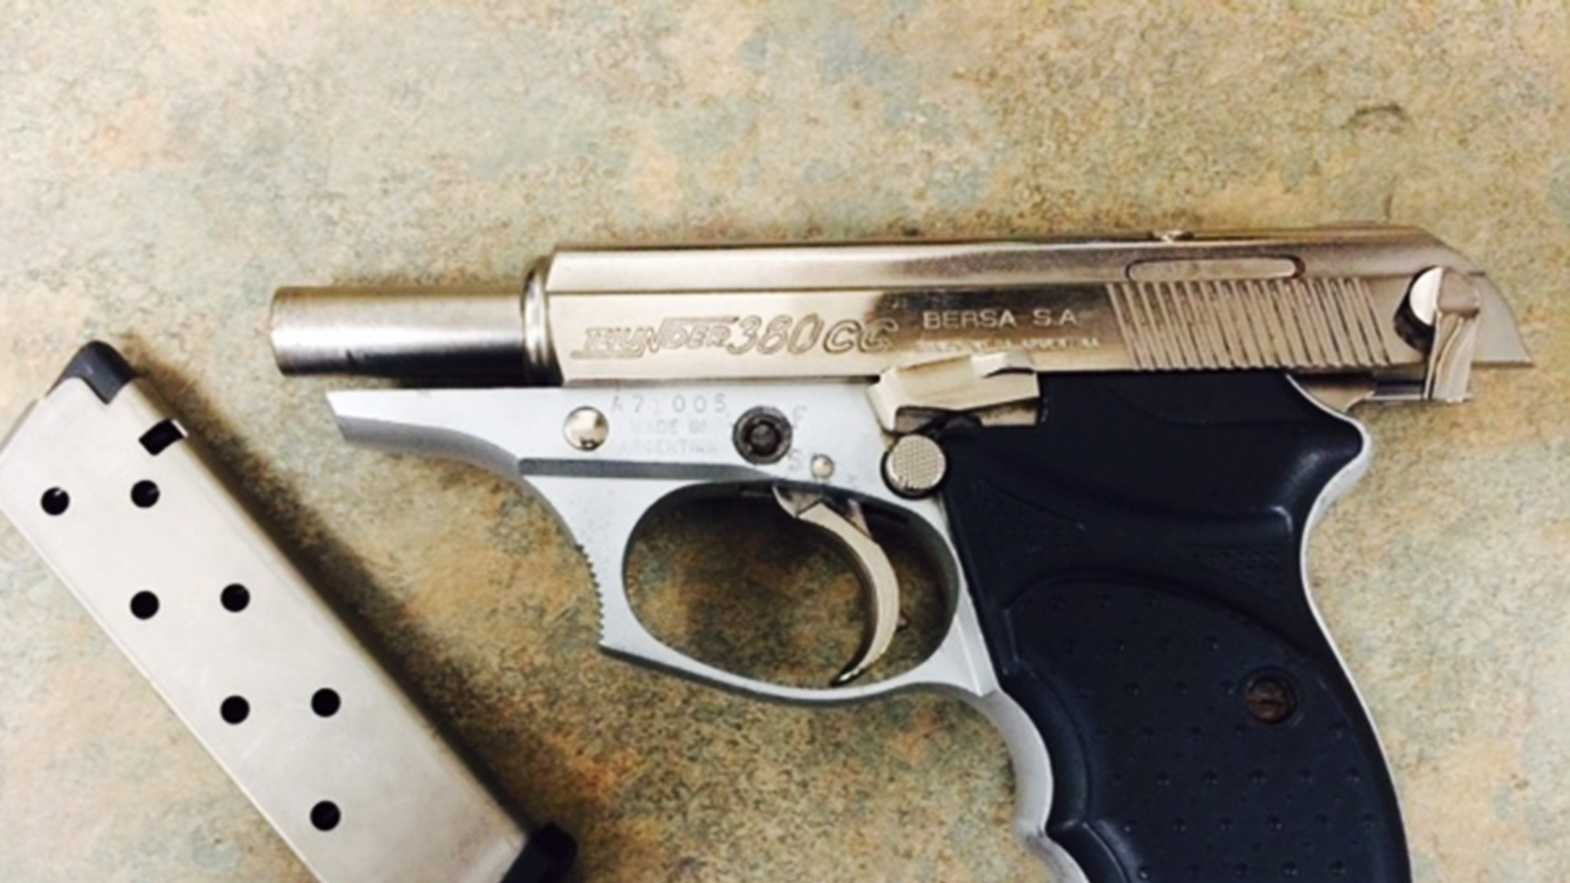 A student brought this loaded gun toMission Hill Middle School in Santa Cruz.